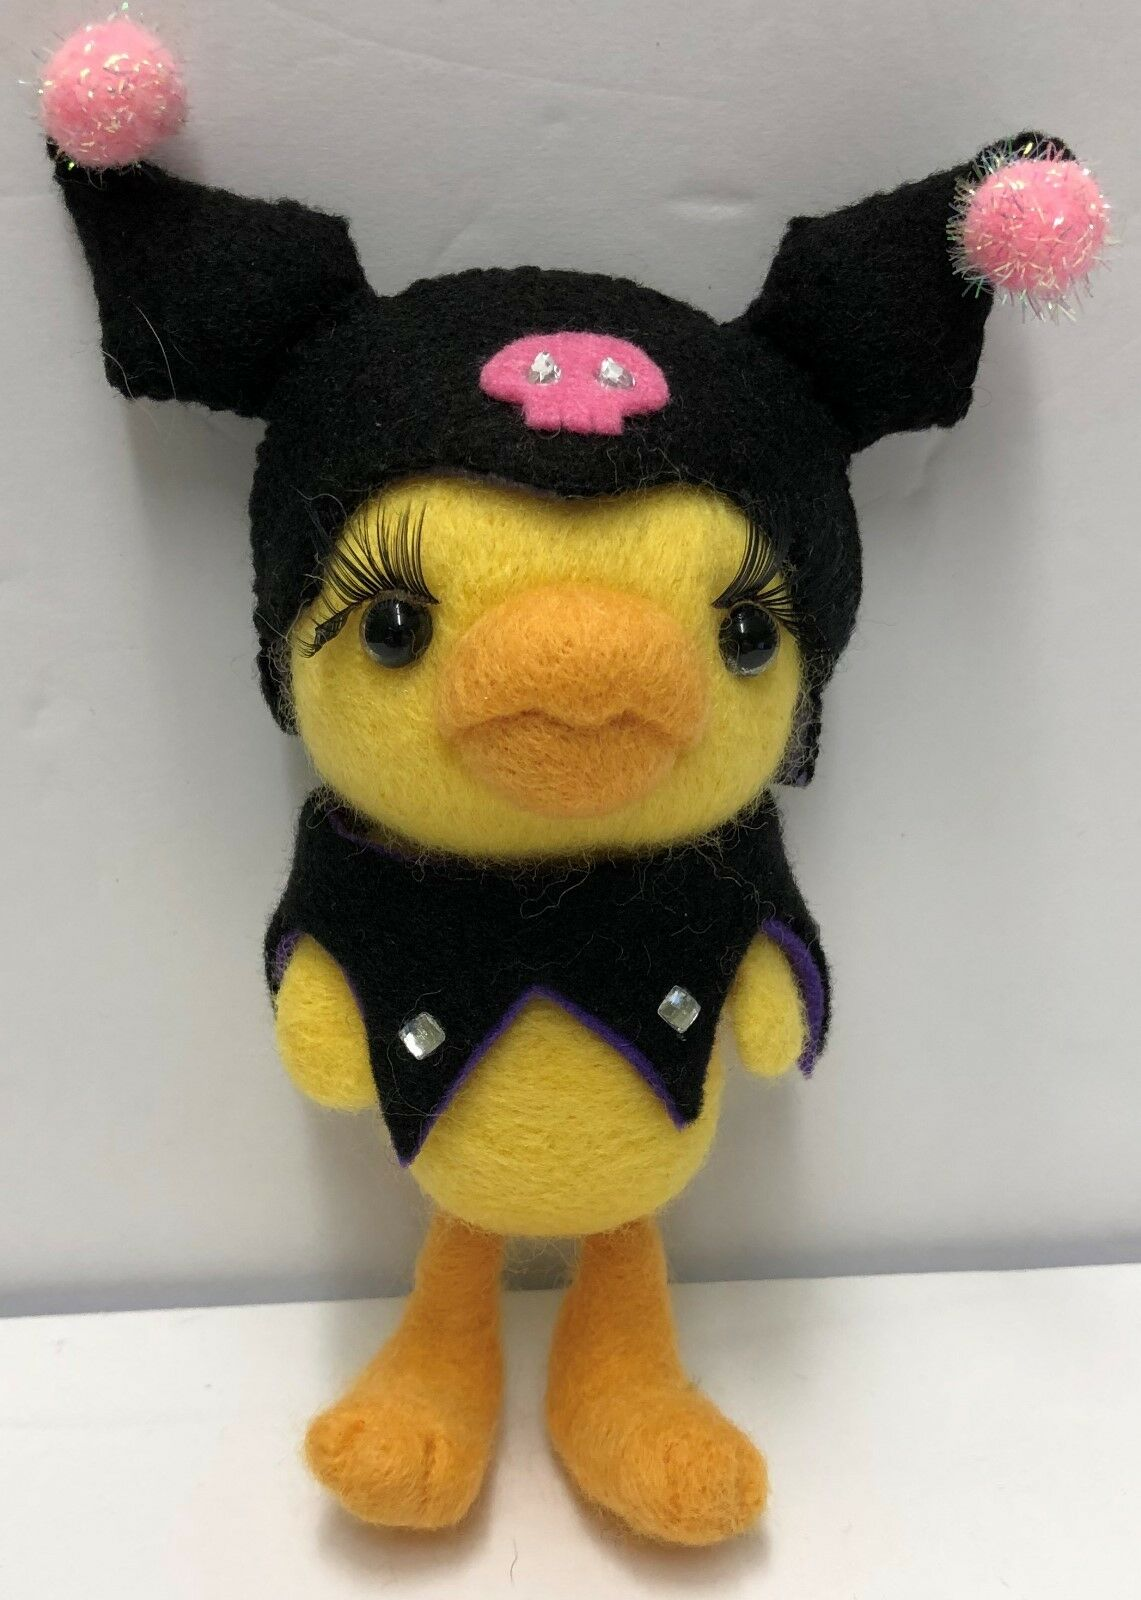 Original One Of A Kind Firm Needle Felted giallo Bird with Bat Costume